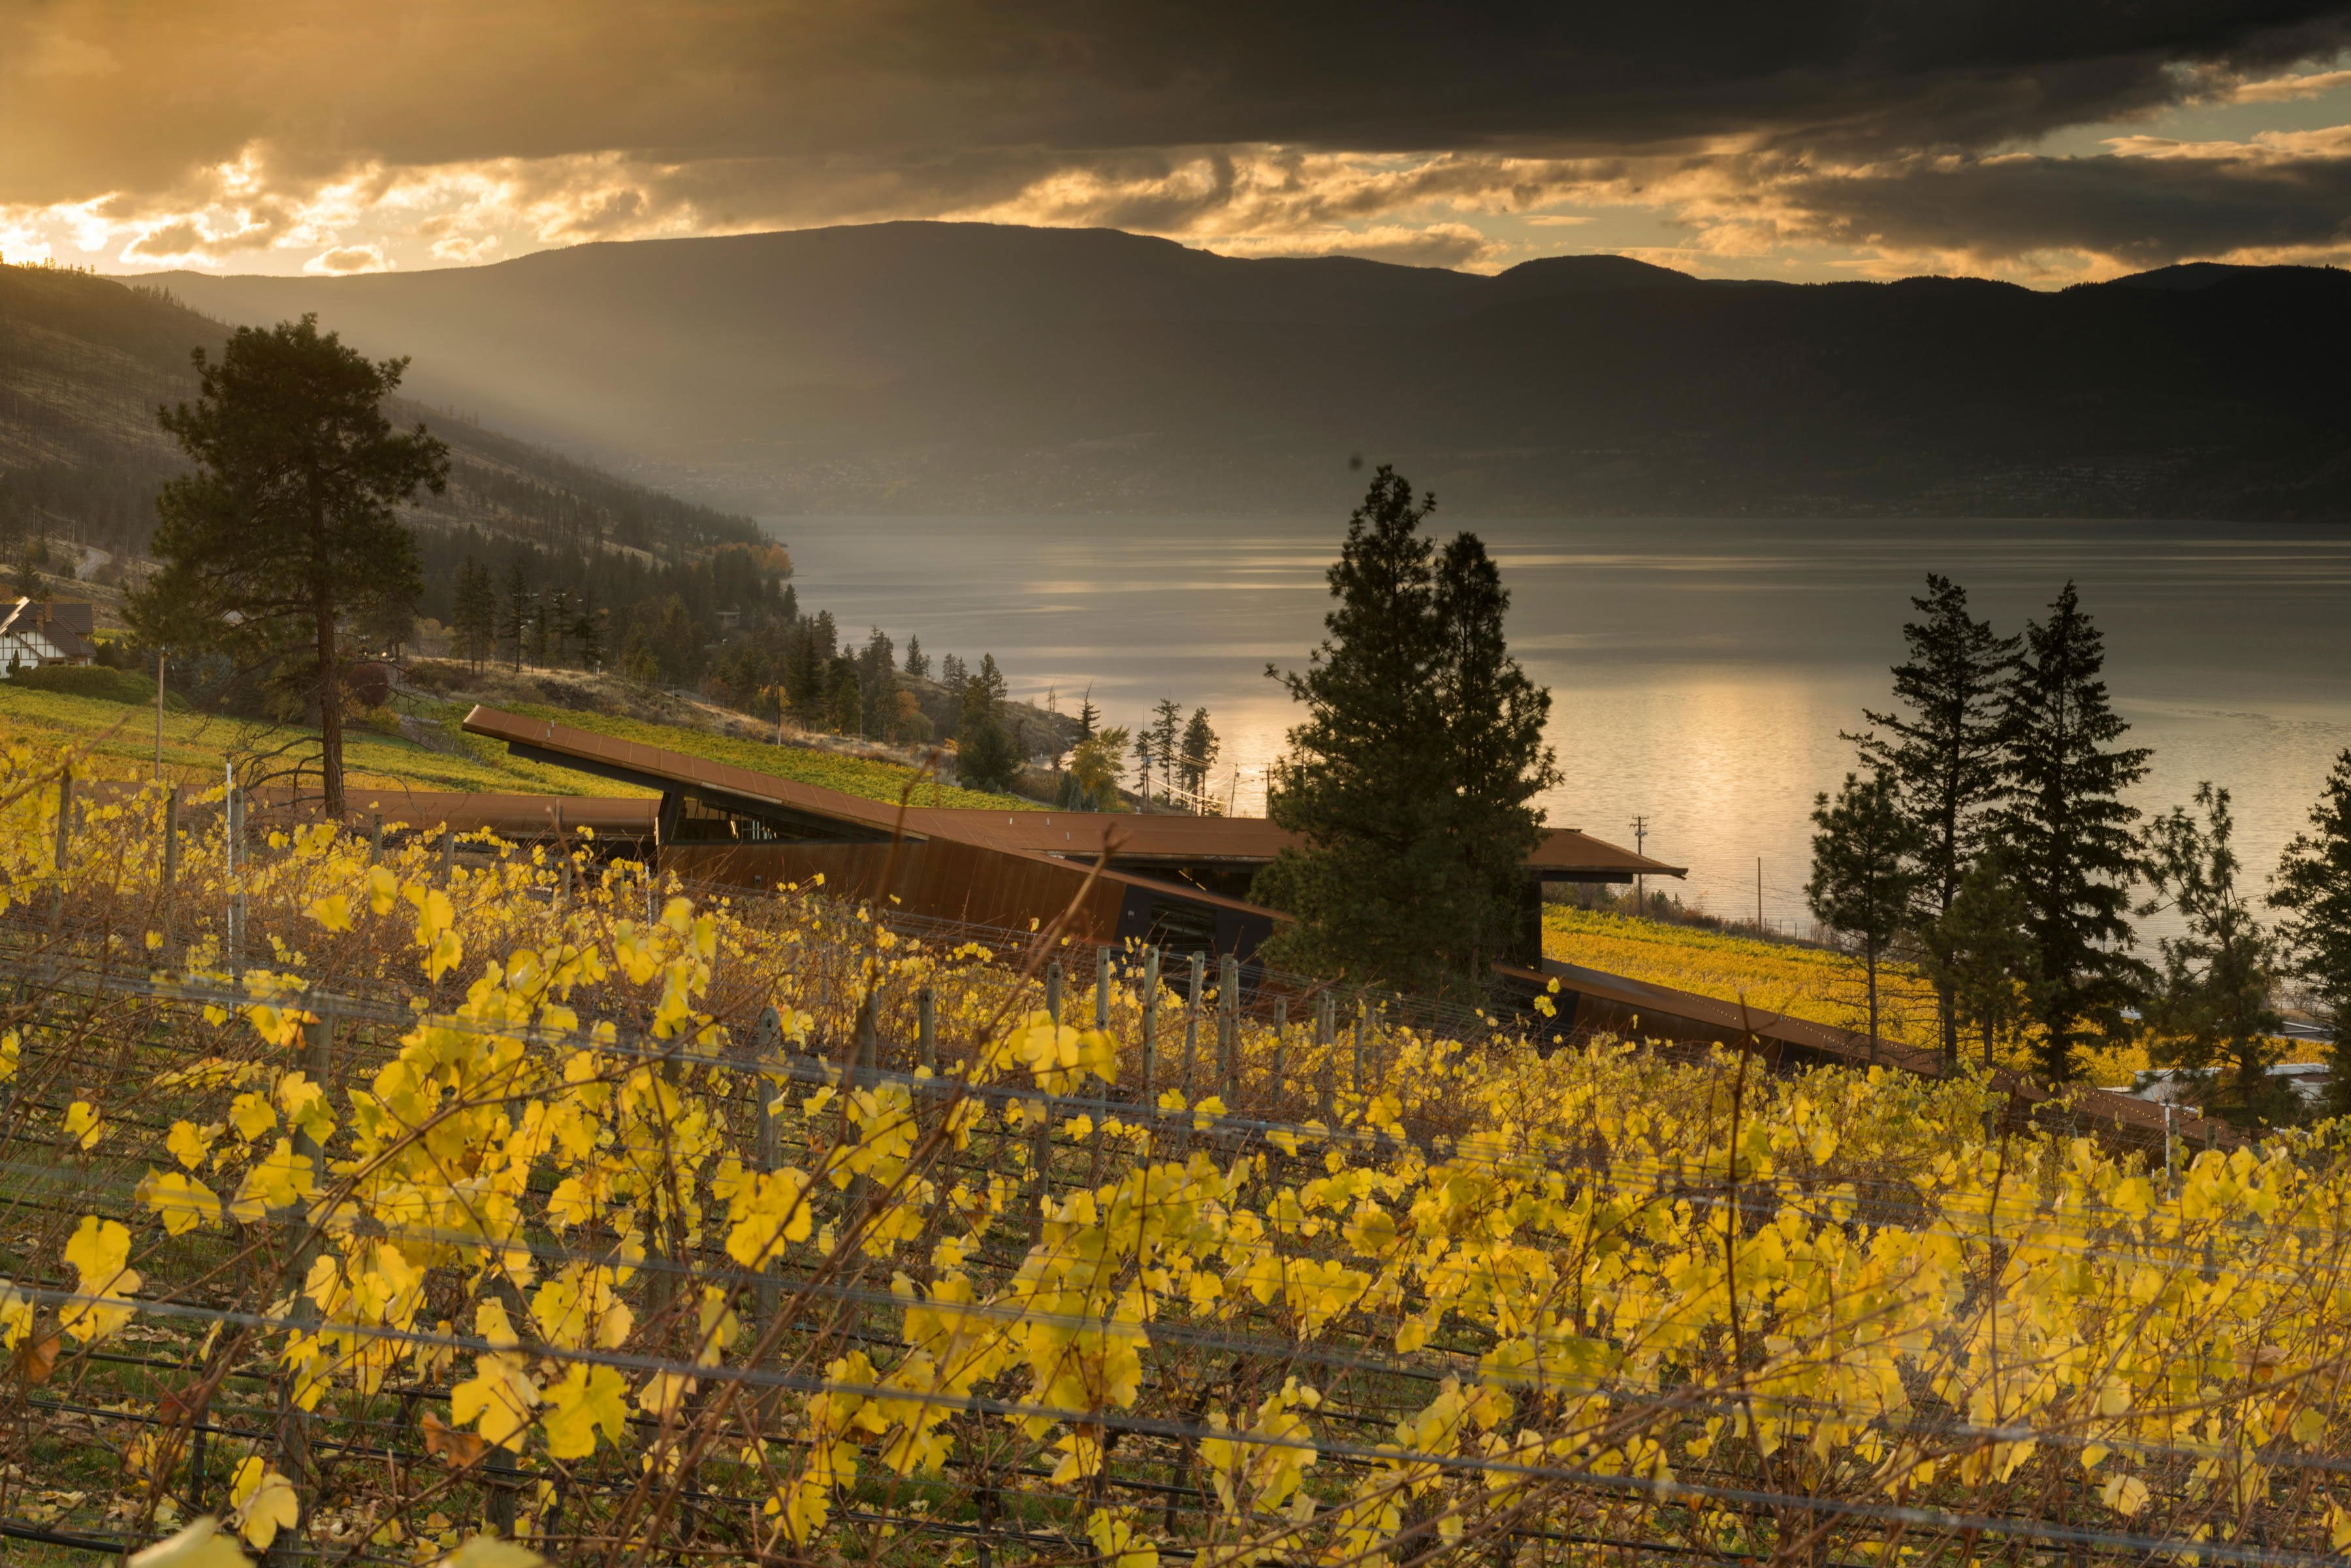 Tom Kundig Martin Lane Winery British Columbia Dominique Houriet San Diego architect oo-d-a